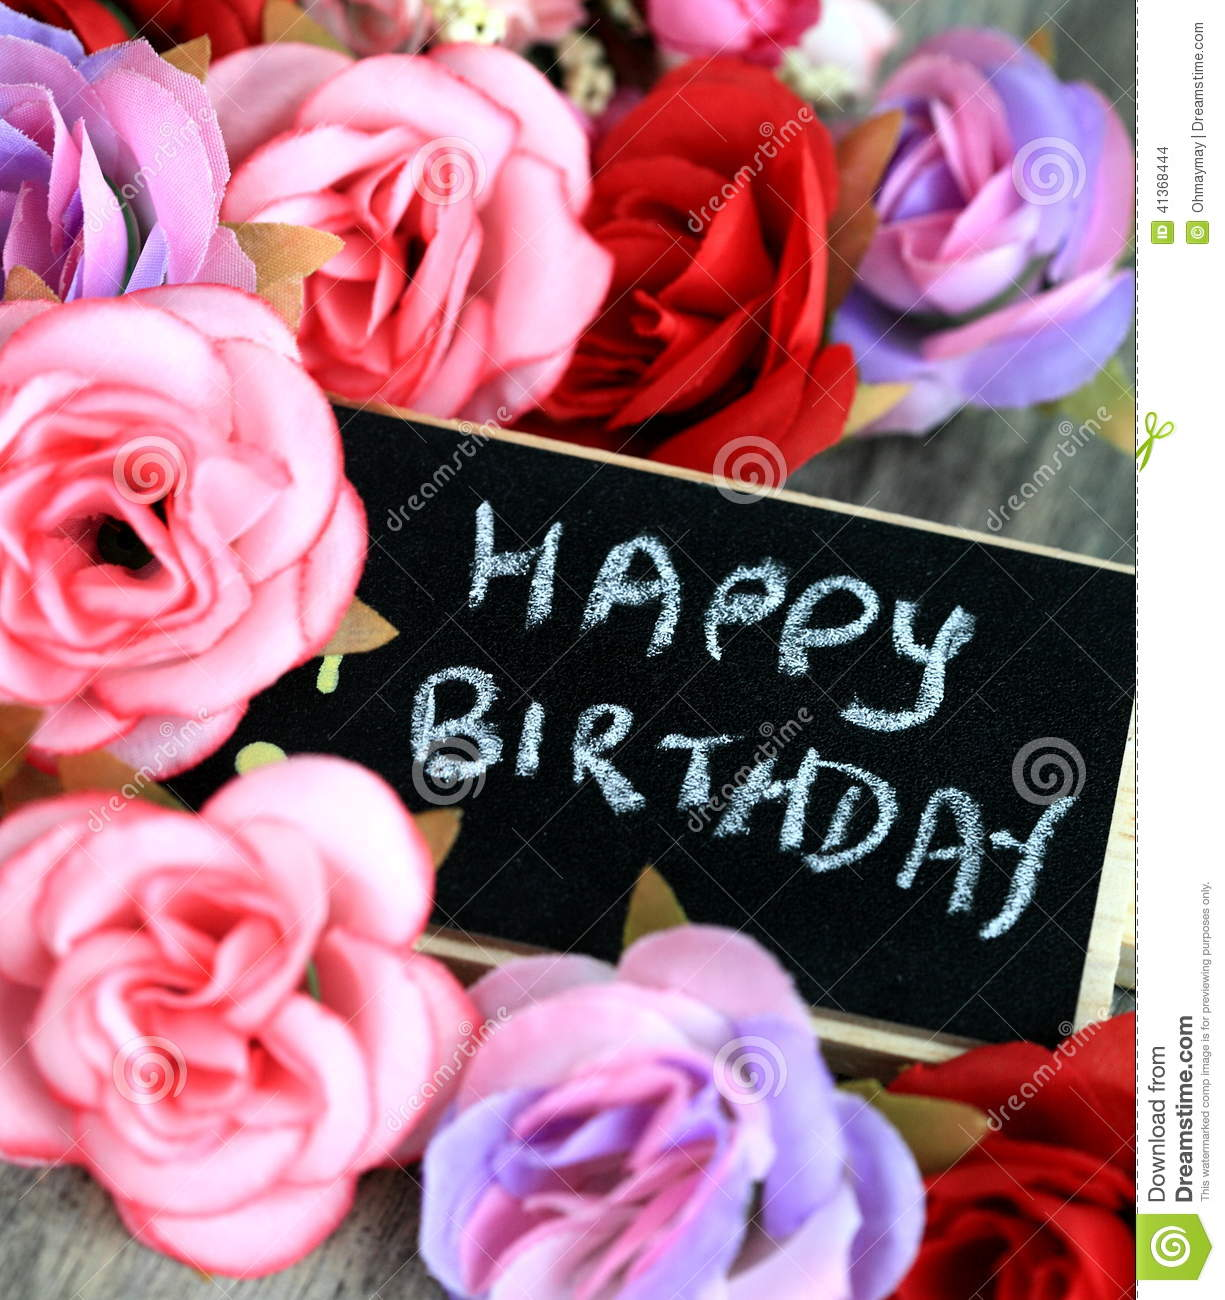 Greetings For Birthday Stock Photo Image Of Card Background 41368444